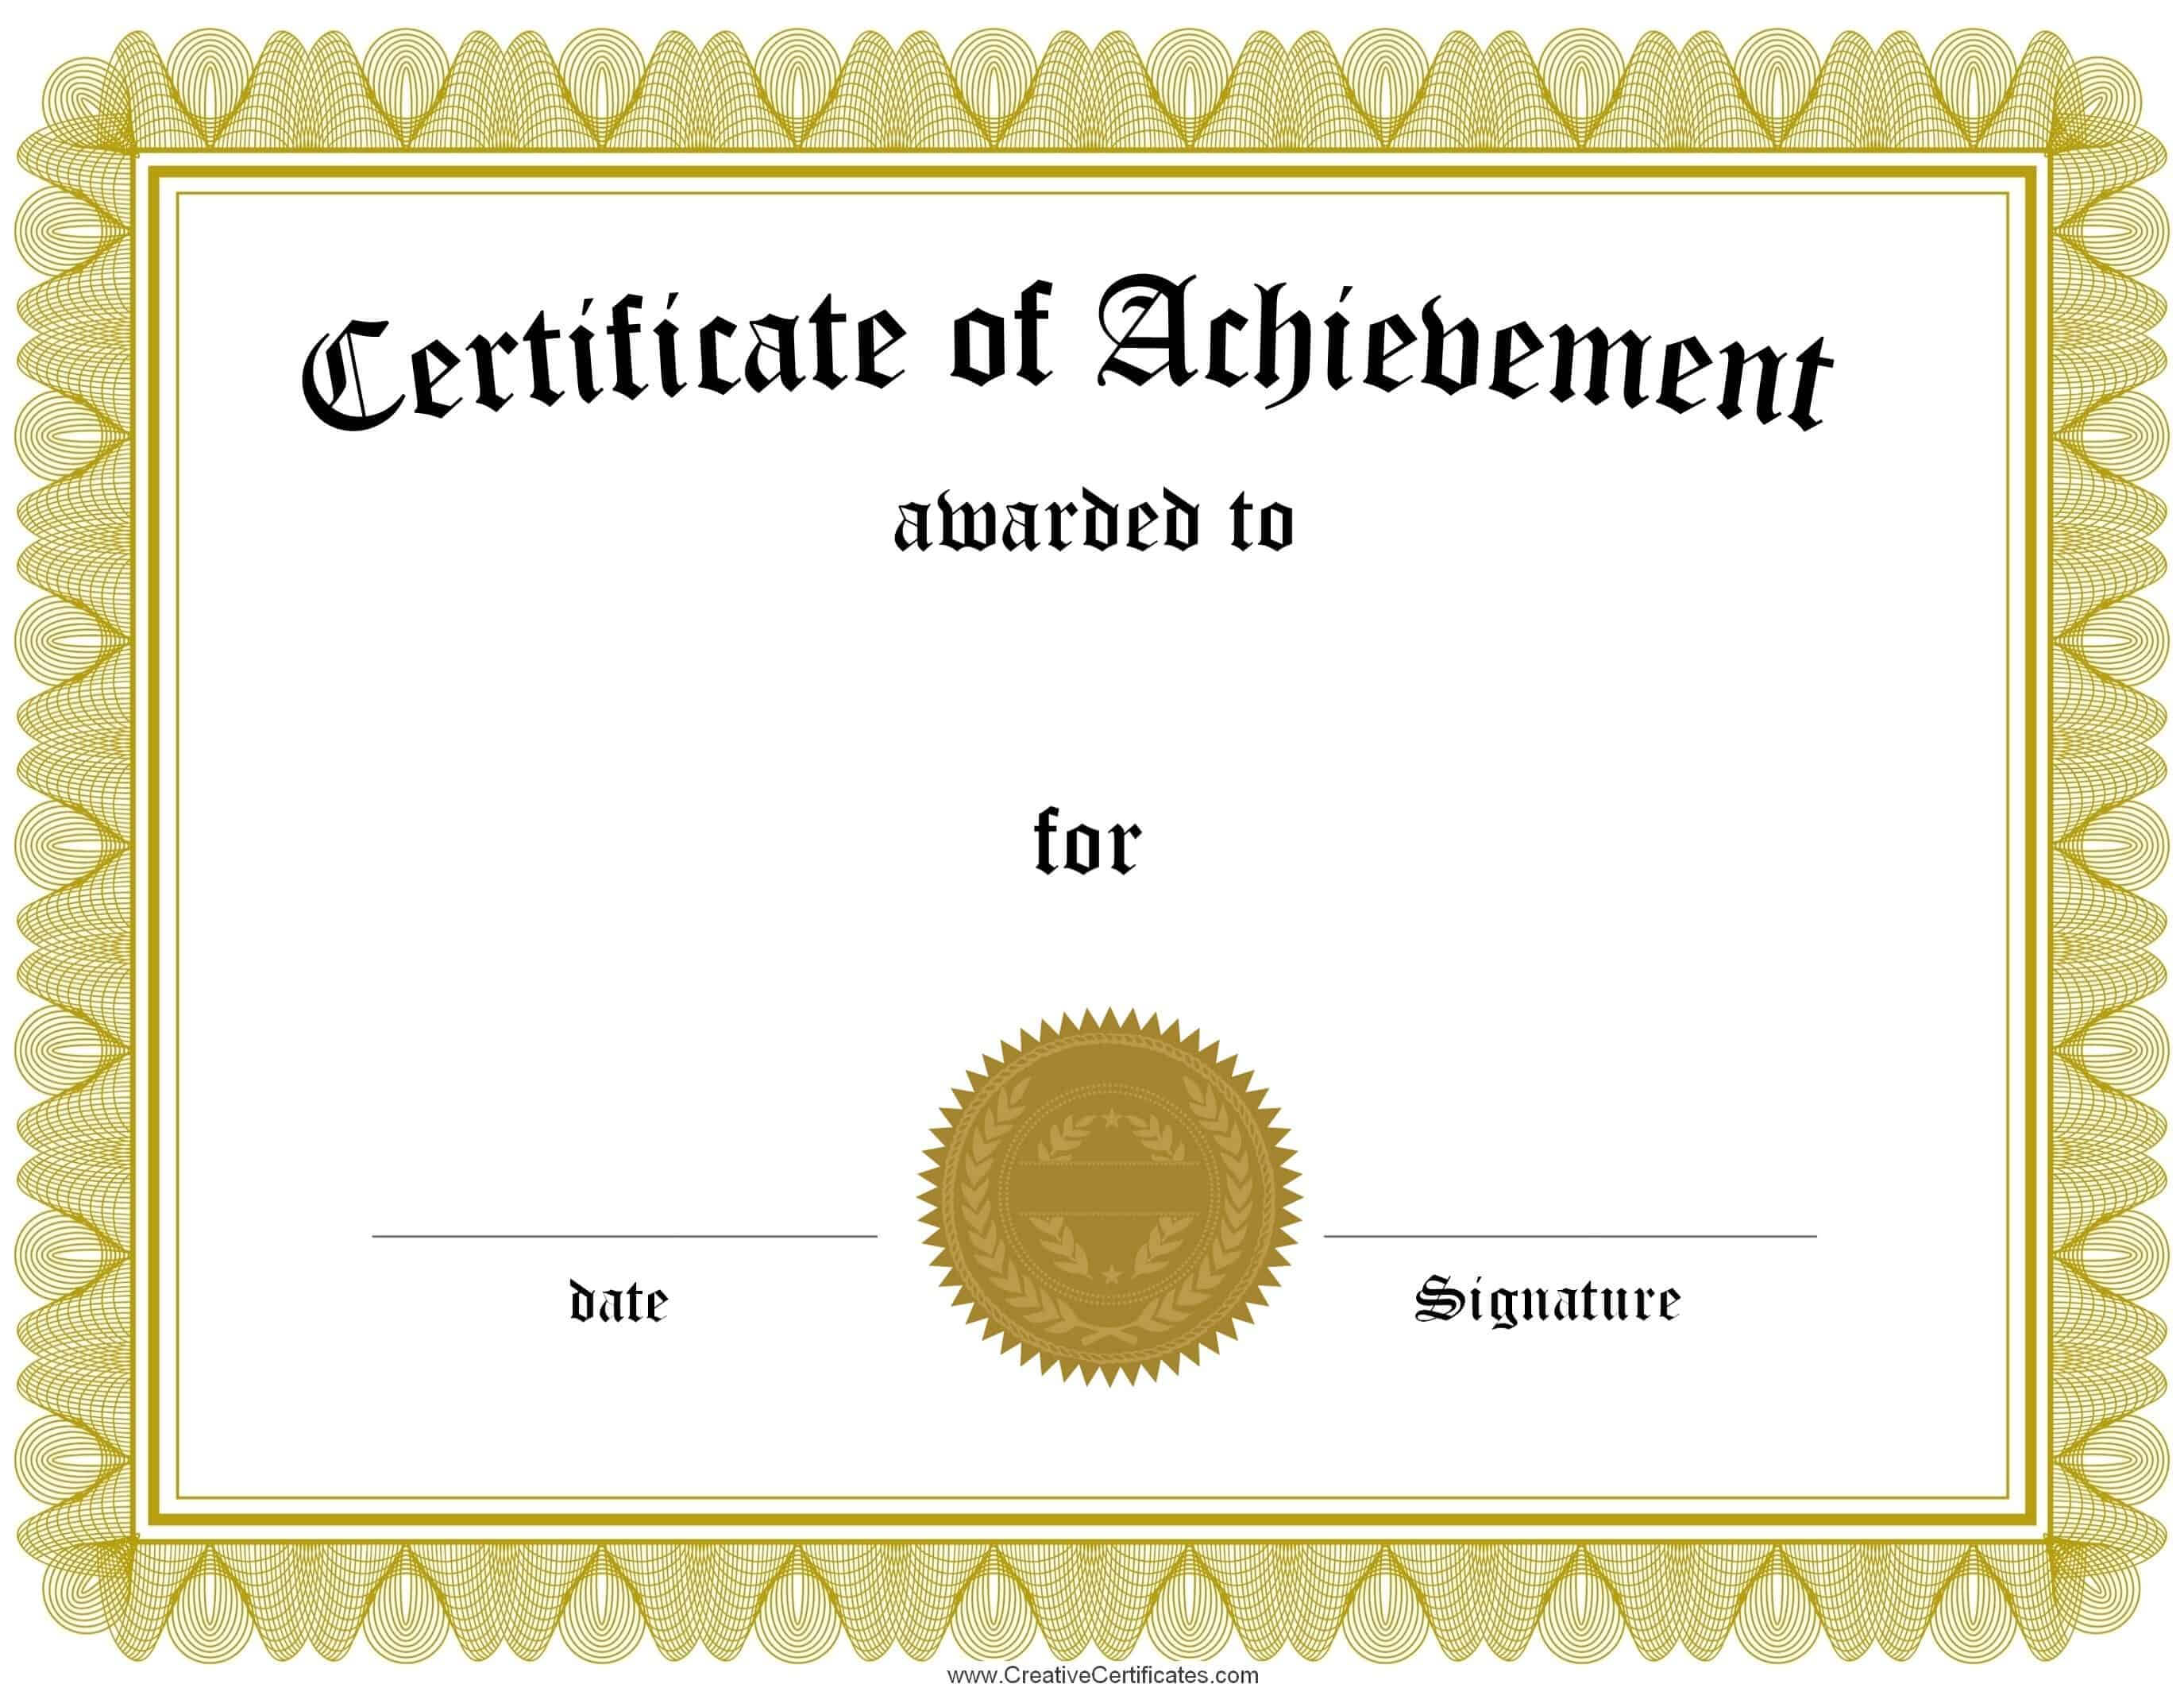 Free Printable Certificate Of Achievement Word Template within Word Template Certificate Of Achievement